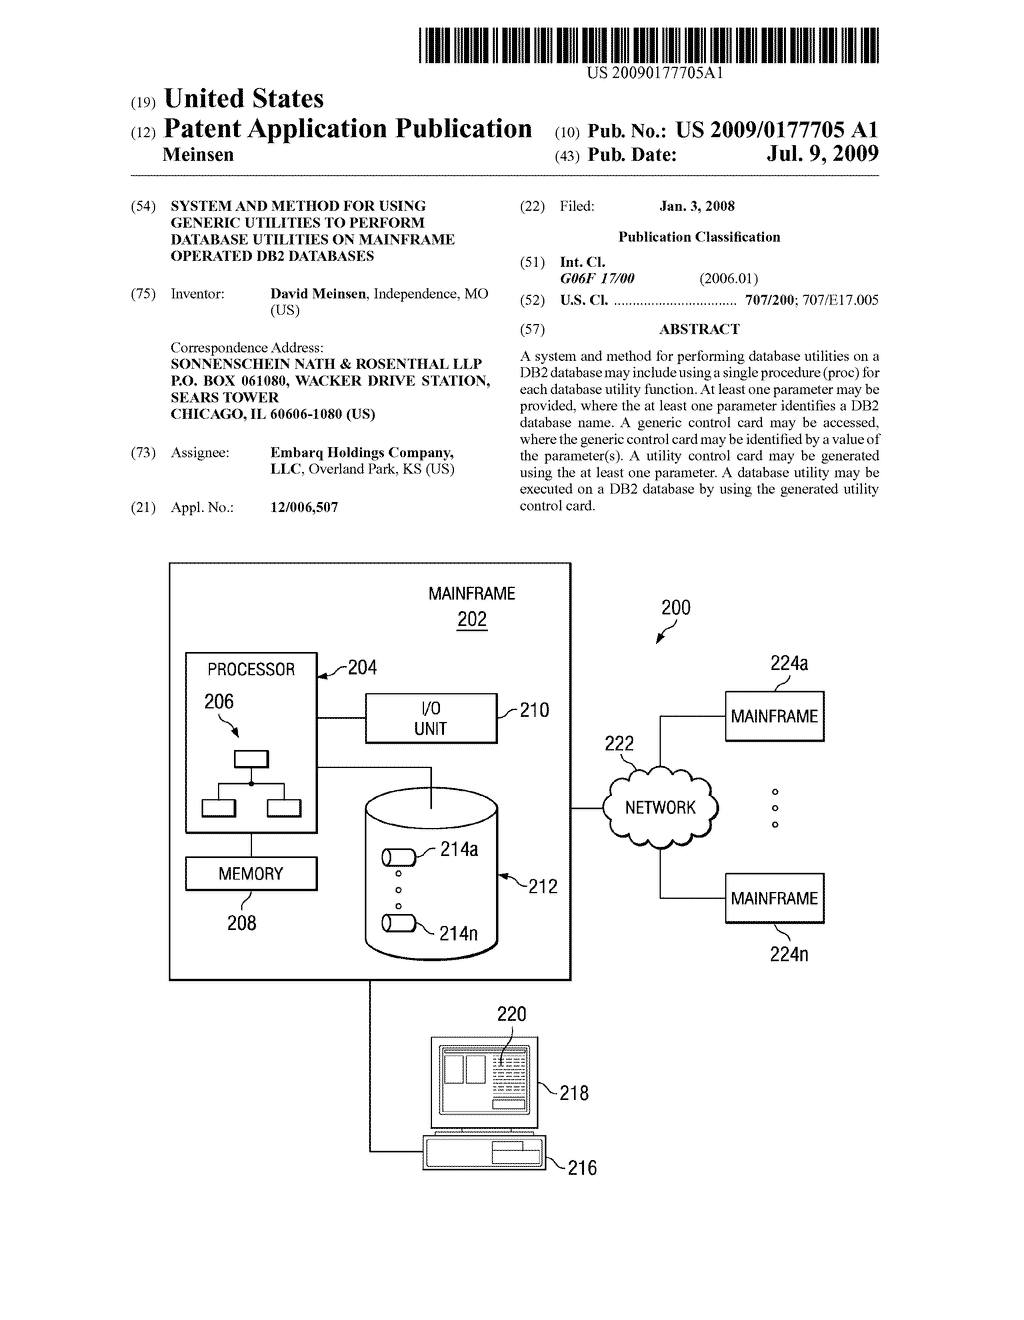 System and method for using generic utilities to perform database system and method for using generic utilities to perform database utilities on mainframe operated db2 databases diagram schematic and image 01 ccuart Image collections